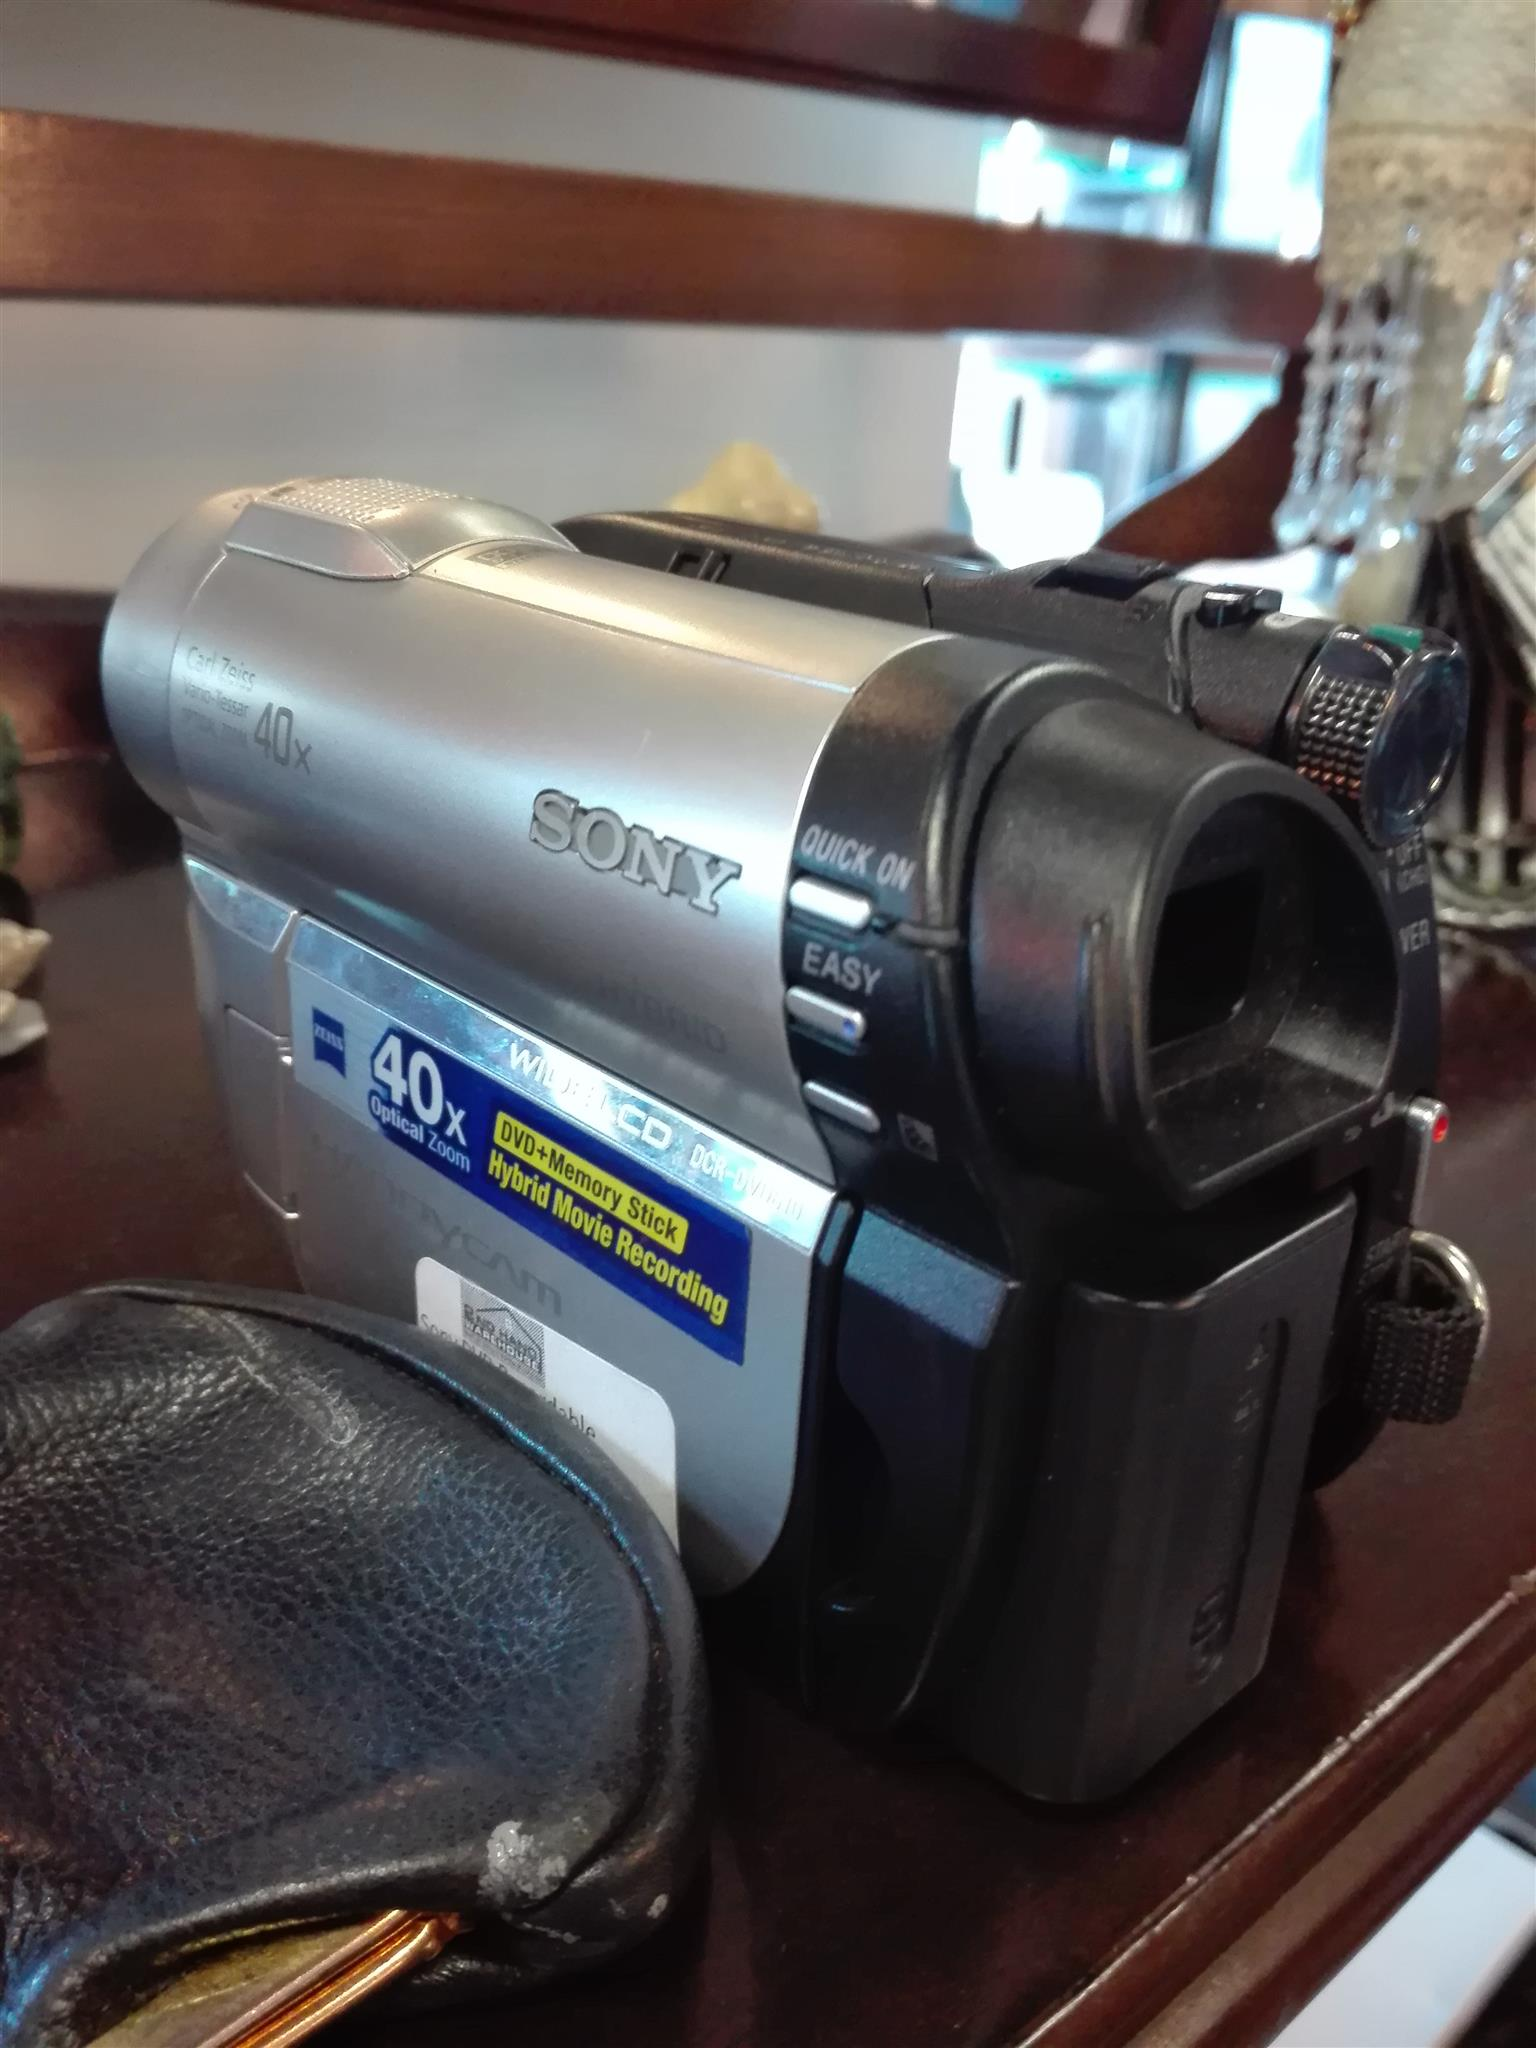 This camera is in a very good working order